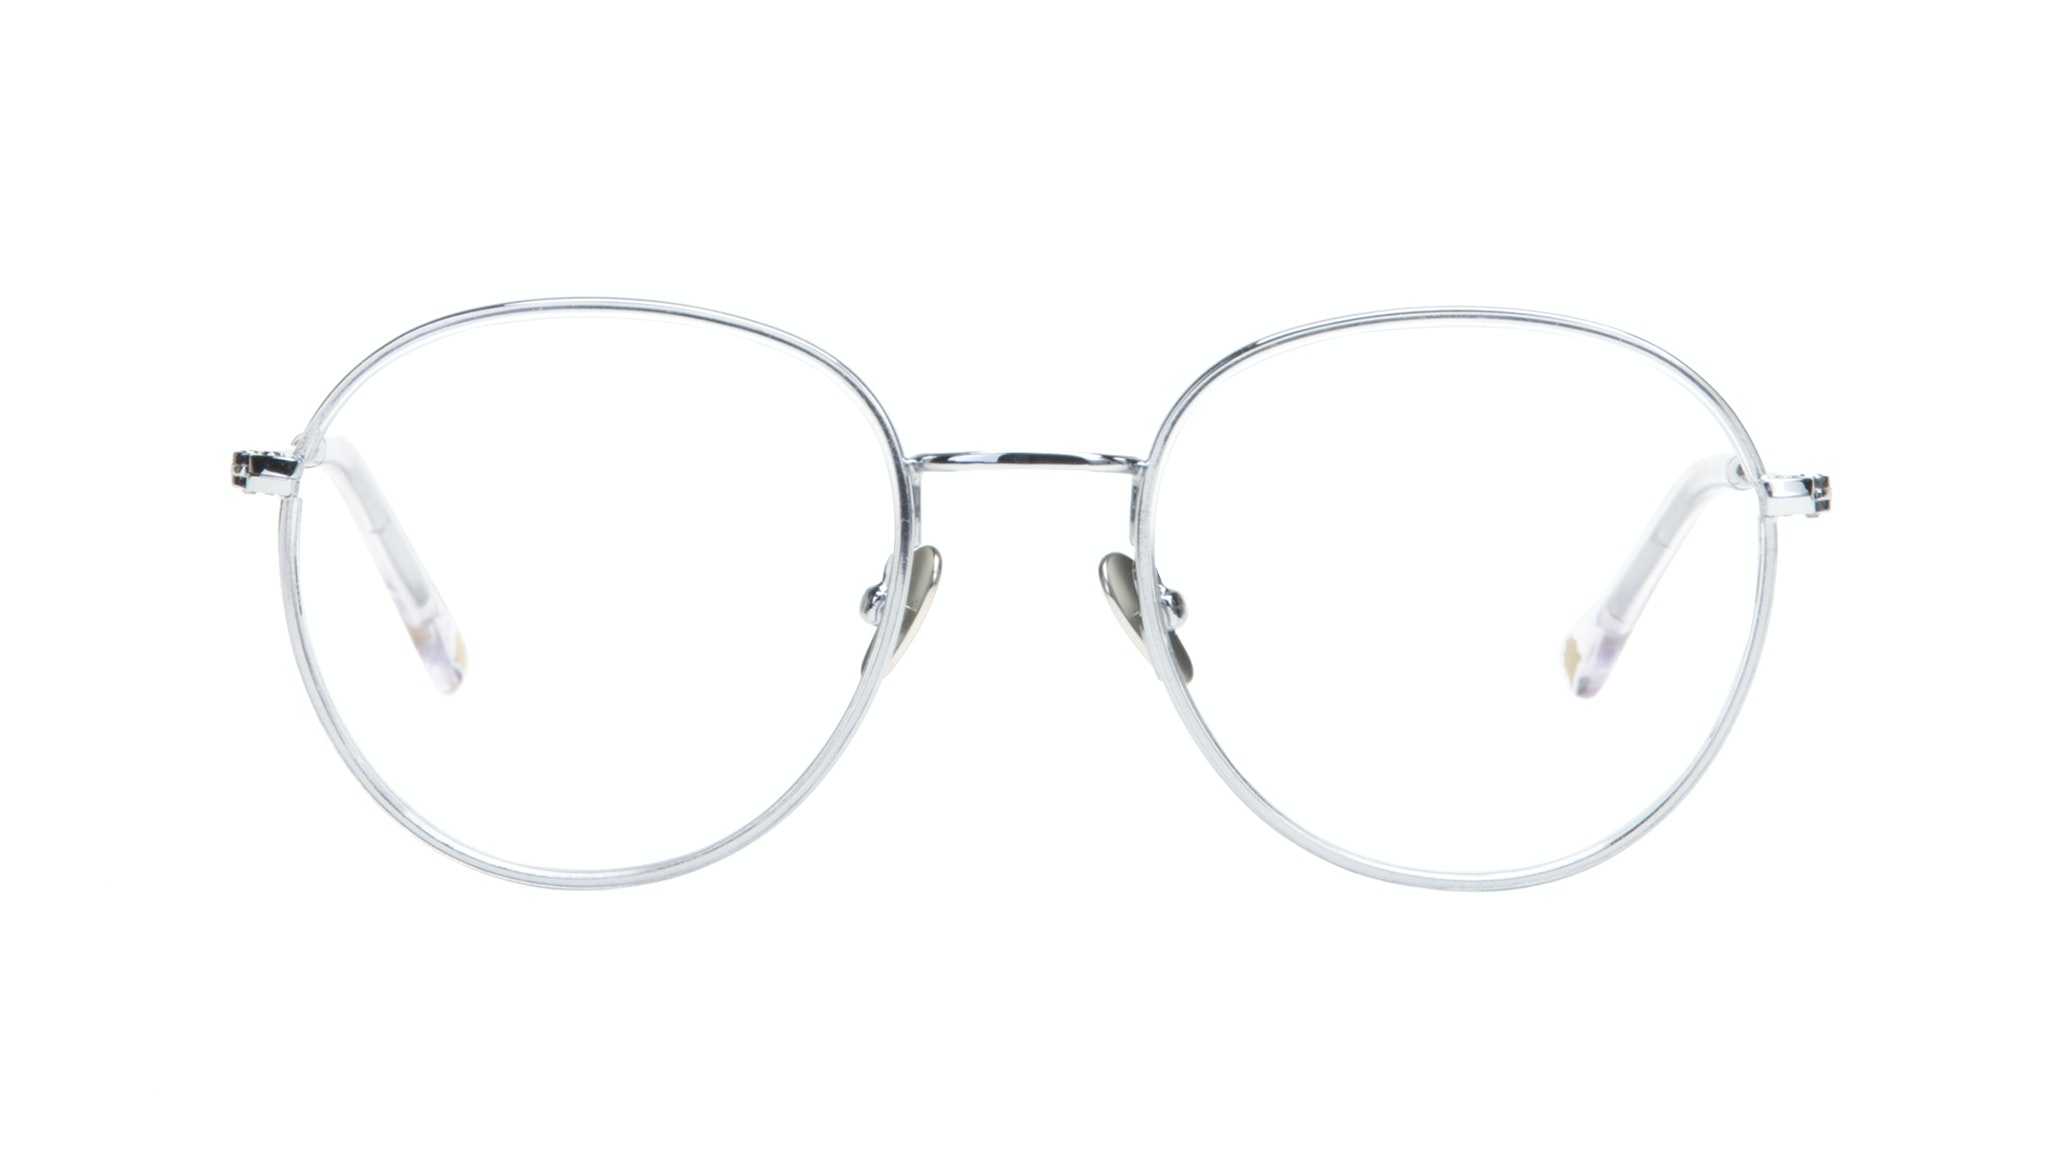 Affordable Fashion Glasses Aviator Round Eyeglasses Women Subrosa Glacier